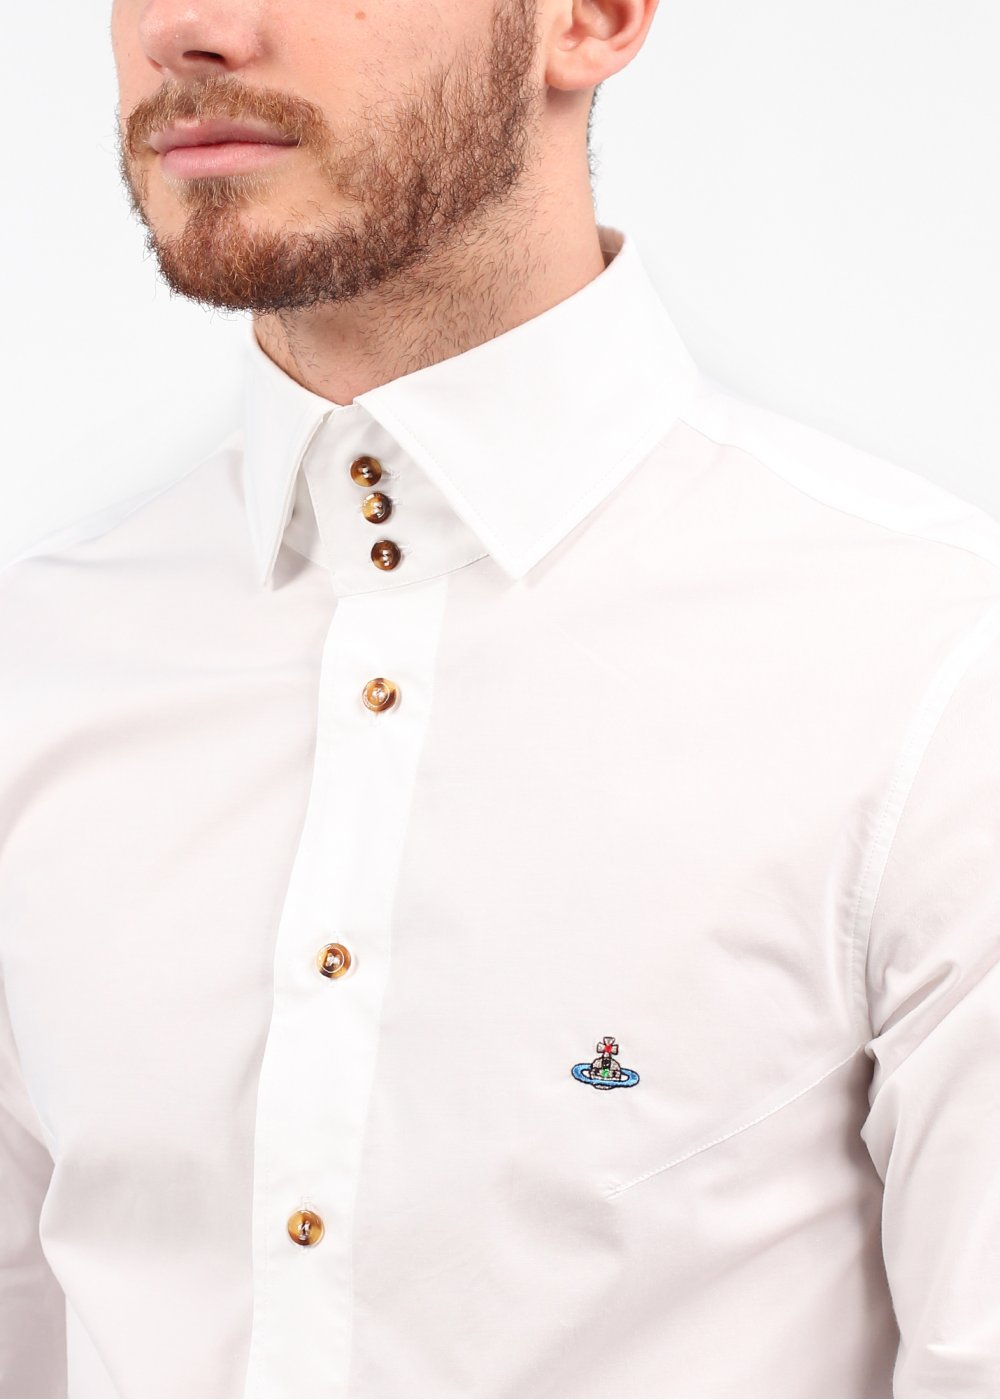 Vivienne westwood 3 button collar shirt white ss14 for 3 button shirt collar